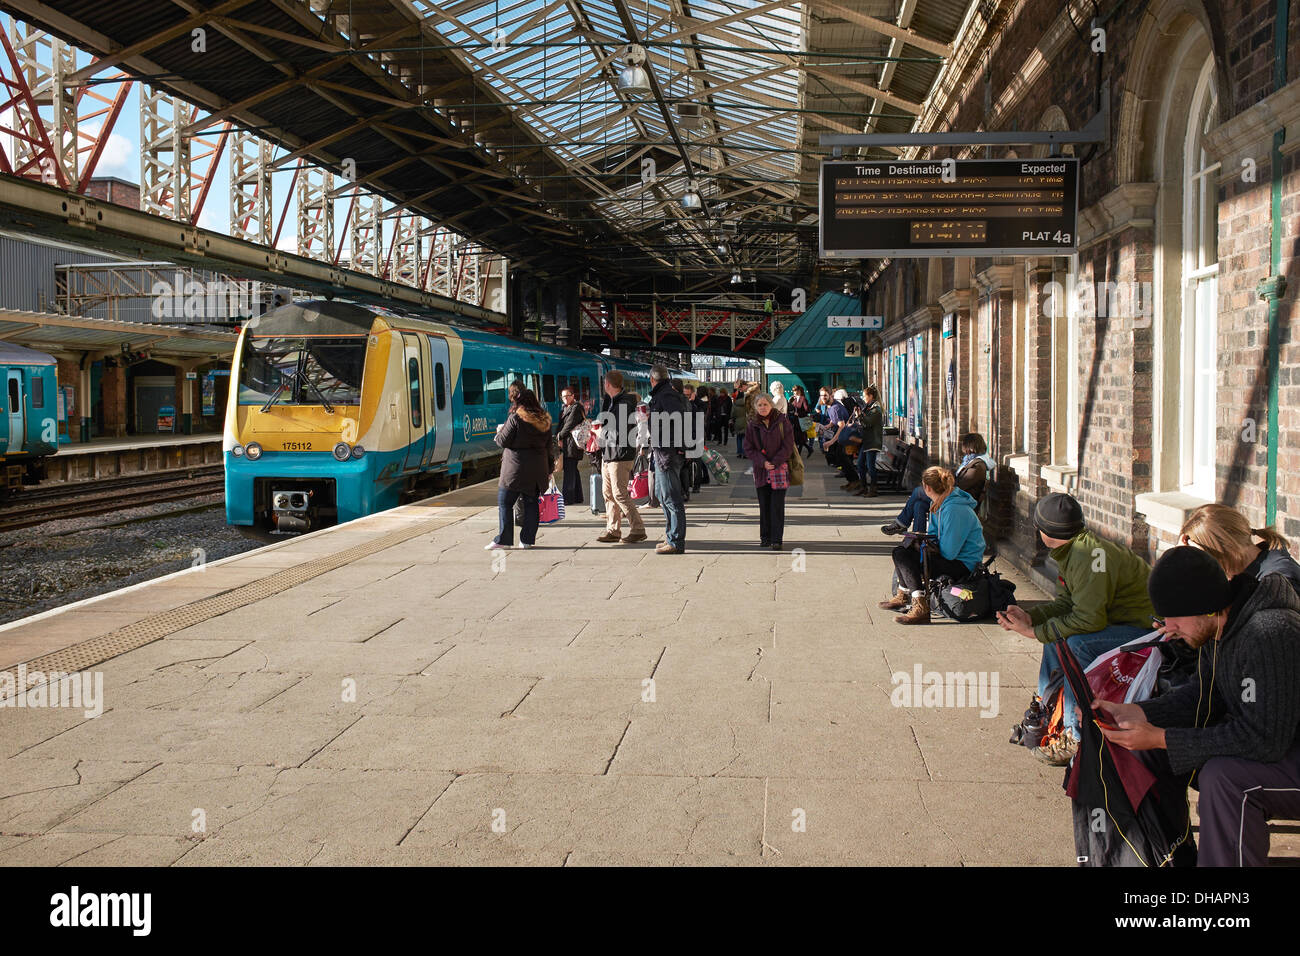 Passengers on the platform at Chester Railway Station as an Arriva train approaches - Stock Image